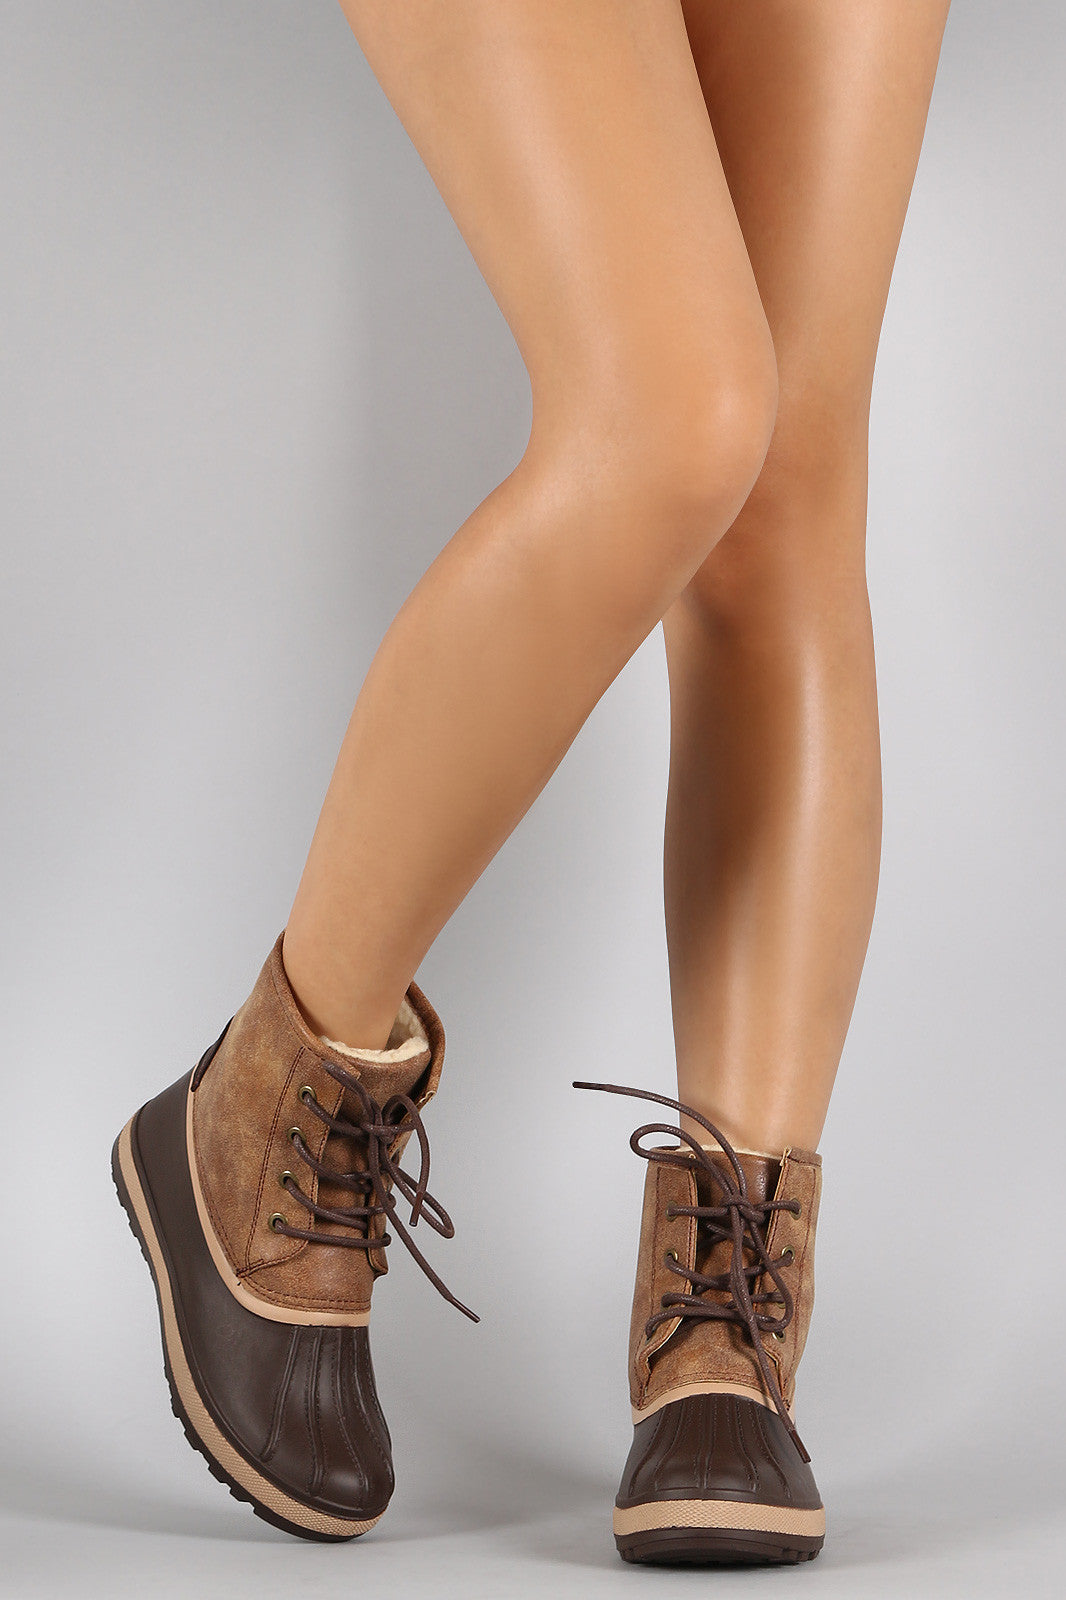 Bamboo Contrast Lace Up Round Toe Duck Ankle Boots - Thick 'N' Curvy Shop - 3